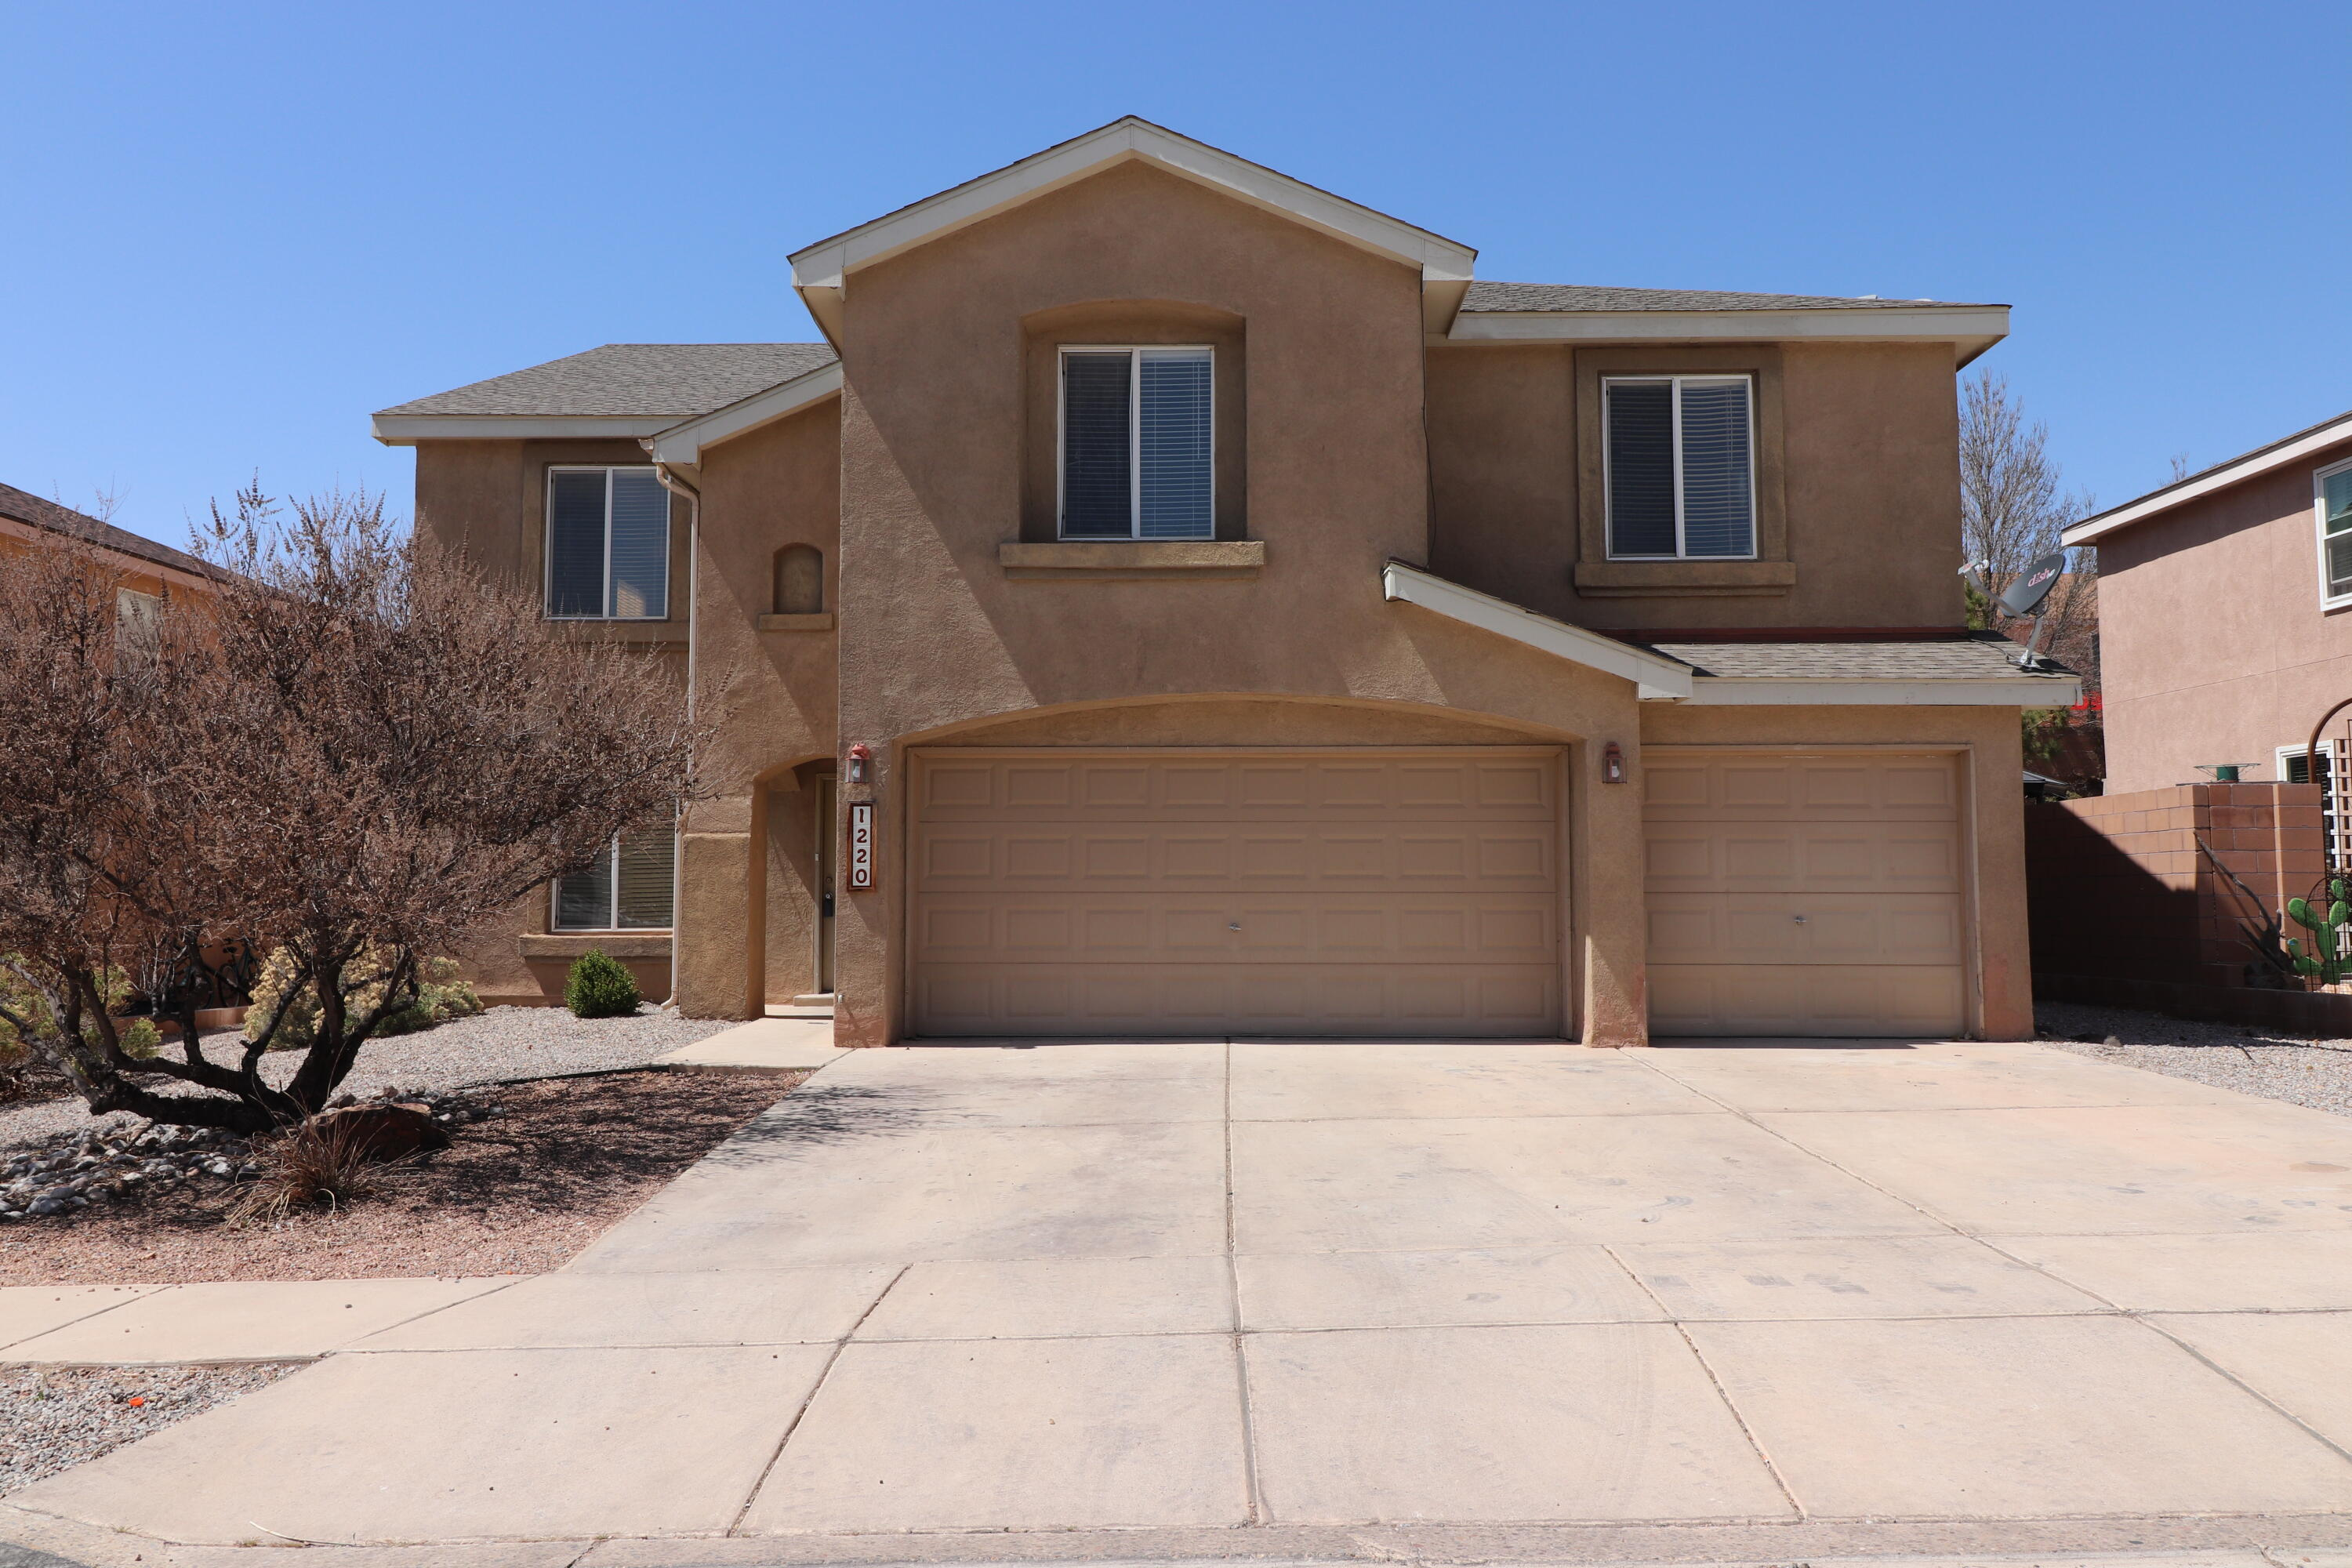 Stunning 5 Bedroom 3 Full bath Pulte Home Plus a Loft and 3 car garage! Just East Of Los Lunas High School And Just Off I-25 and Main. This home has tile floors throughout downstairs and bathrooms, carpeted upstairs. The three living areas offer plenty of room to entertain or home school! Enjoy Open kitchen with lots of cabinet space, large pantry and island, Utility room. Huge loft area with wet bar. Large master suite and master bathroom with double sinks, large garden tub, separate shower and Huge walk-in closet. 3 spare bedrooms are upstairs with a full bathroom and each bedroom has their own walk-in closet. There is an additional spare bedroom downstairs with its own full bathroom, this could be an in law or teenage quarters, guest bedroom, or office the possibilities are endless.